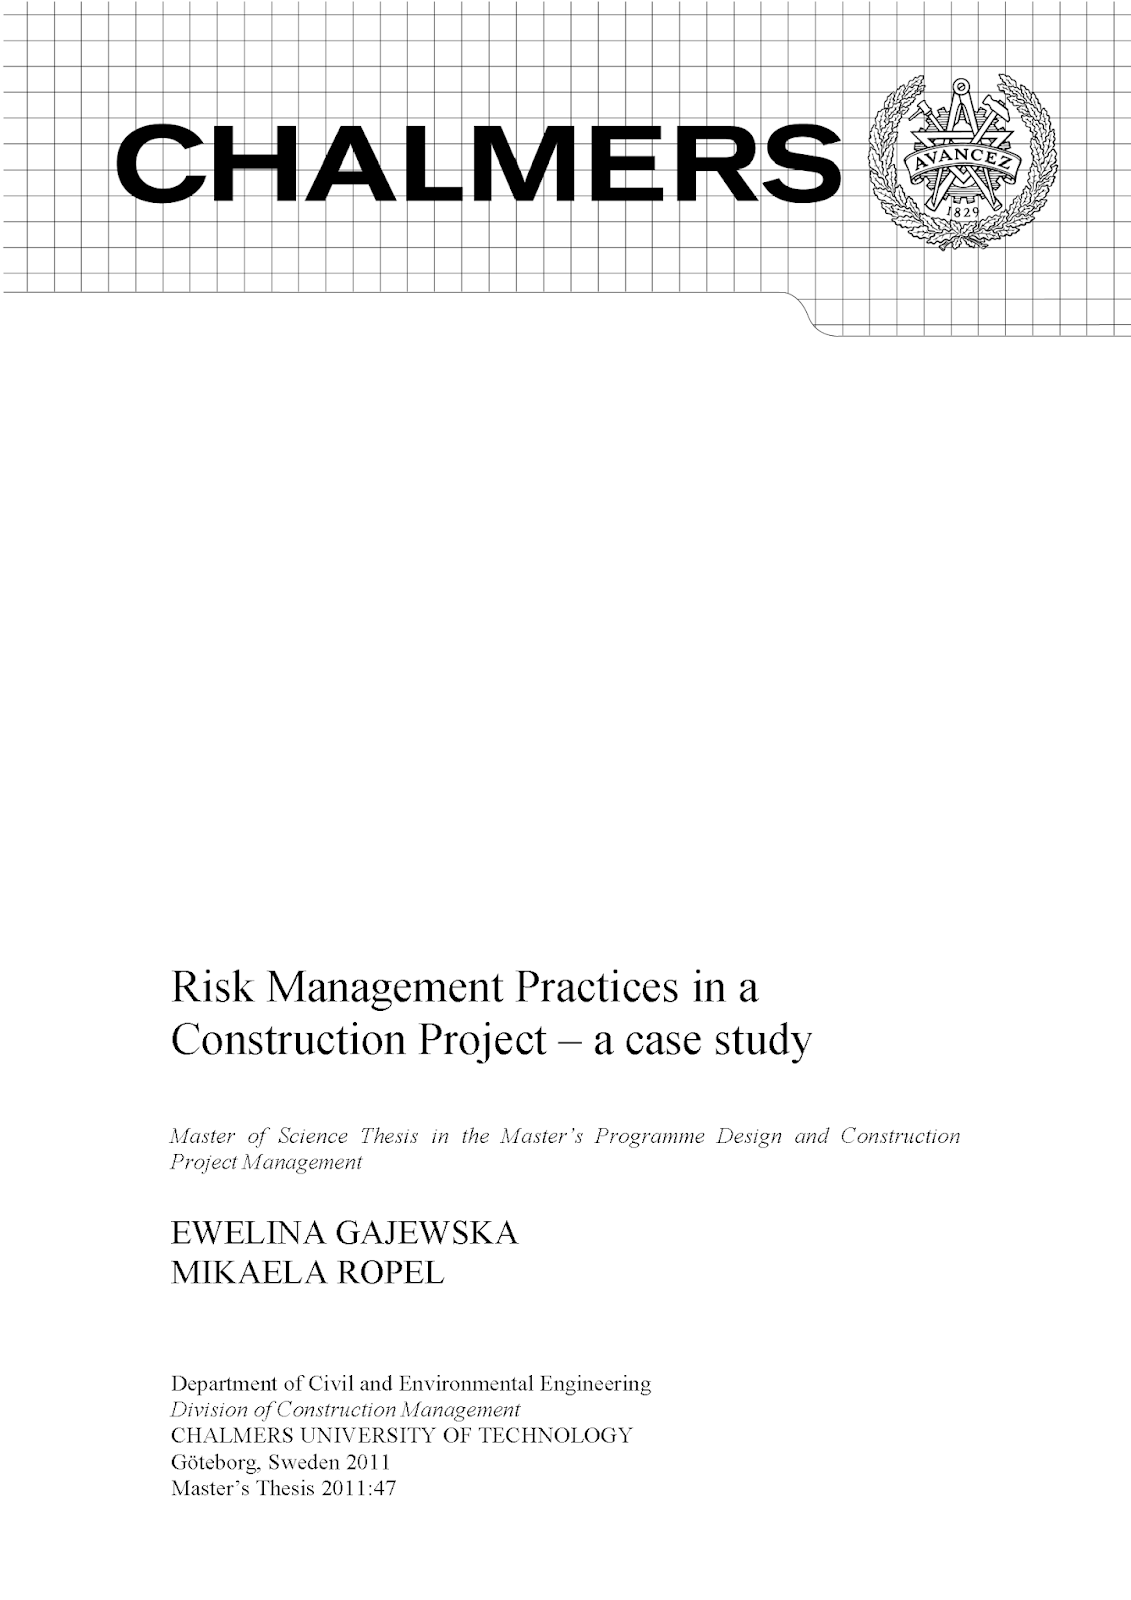 Risk Management Practices in a Construction Project